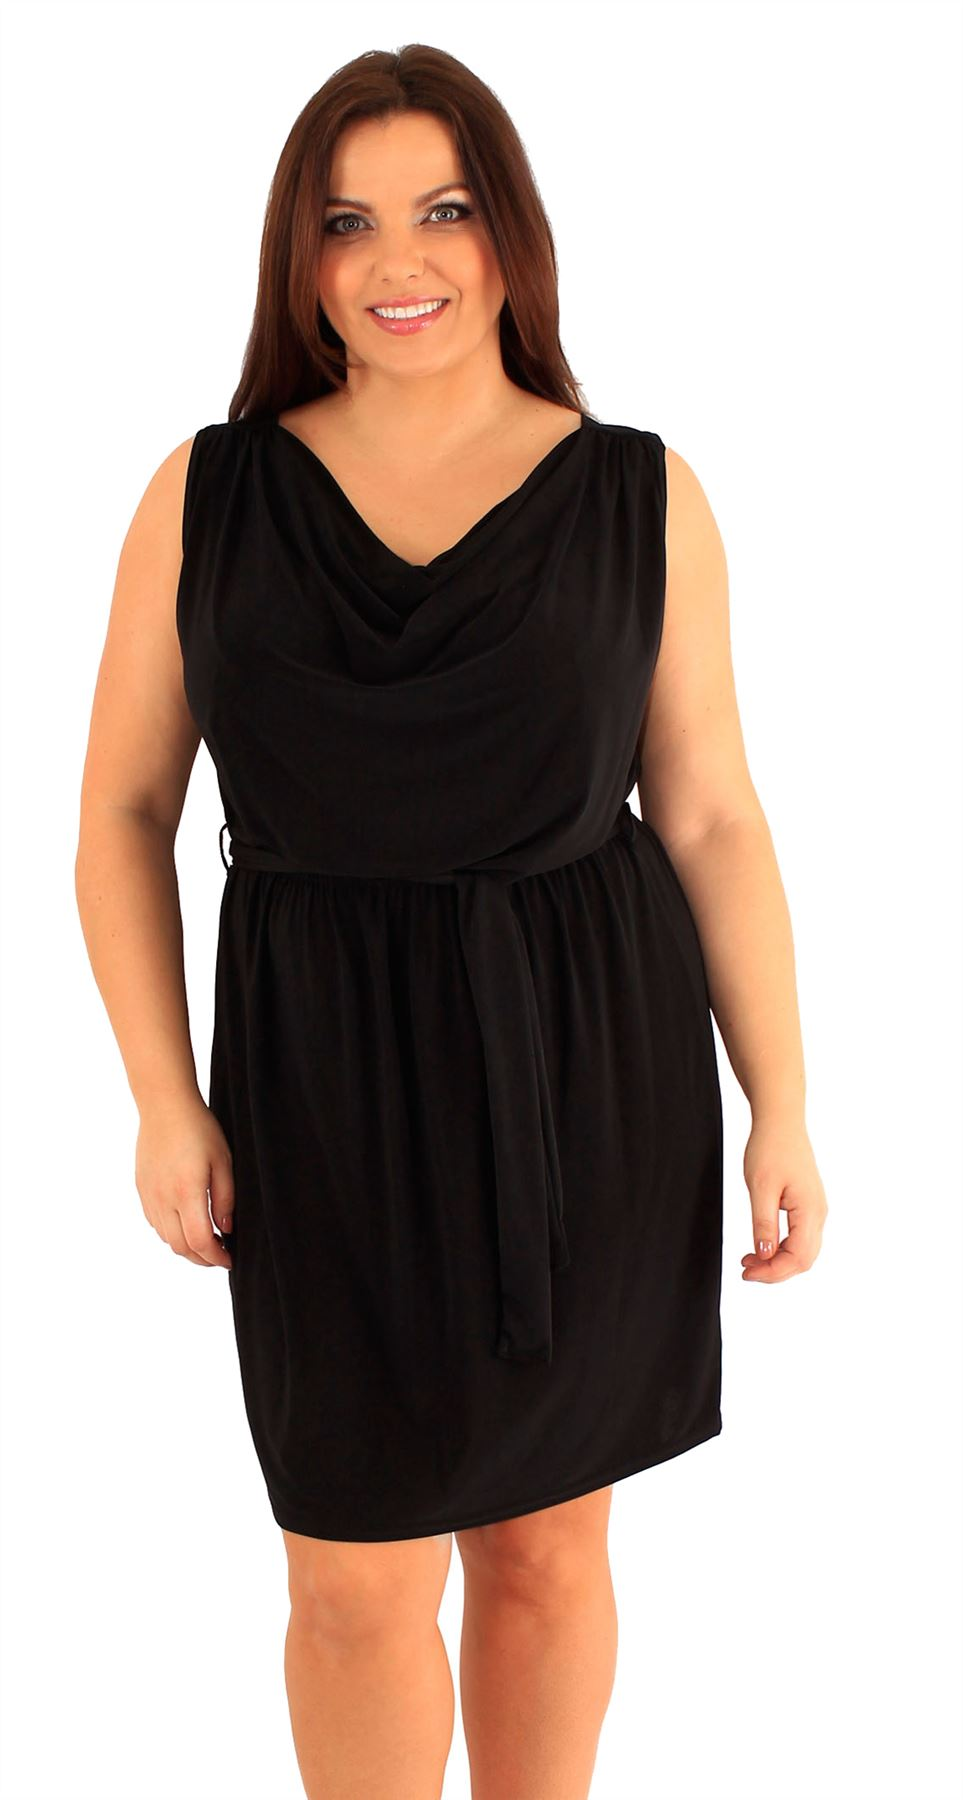 Clothes for going out womens